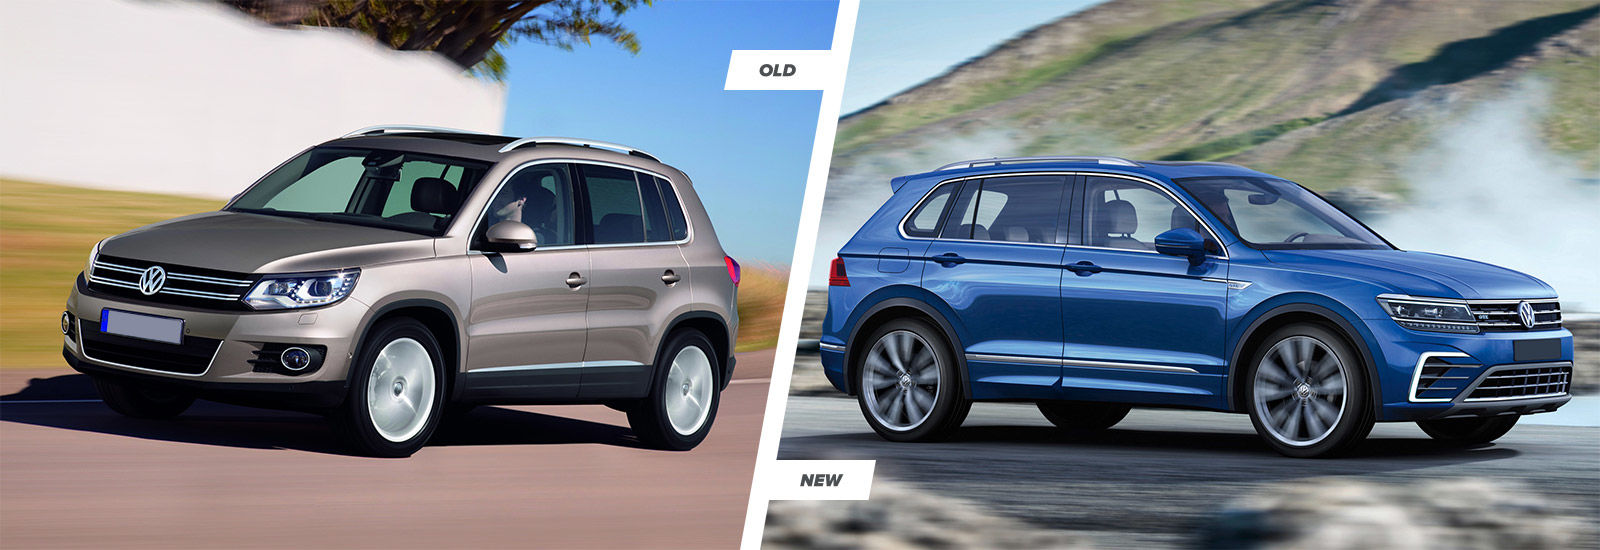 Before the new model arrives there ll be progressively better savings offered on the outgoing version put the current volkswagen tiguan in our car